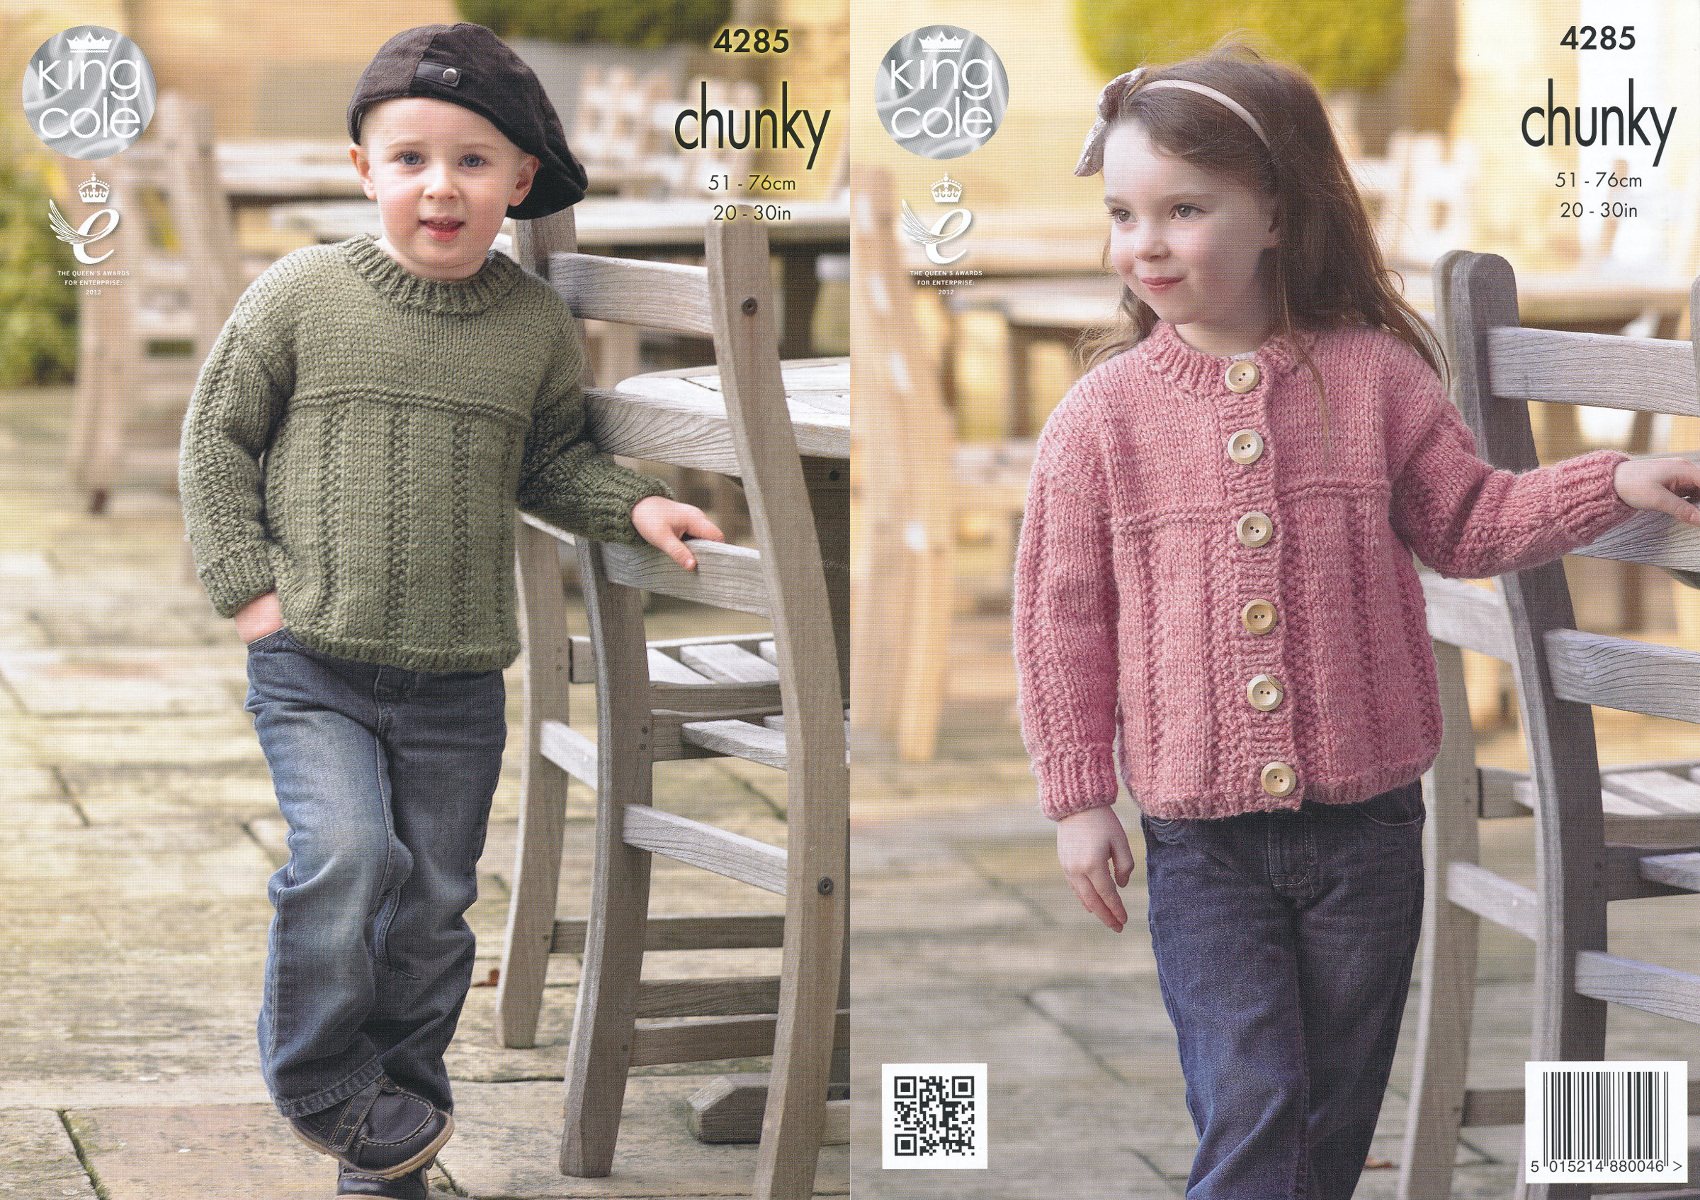 Kids chunky knitting pattern king cole childrens sweater jumper item description this chunky knitting pattern leaflet 4285 by king cole bankloansurffo Gallery